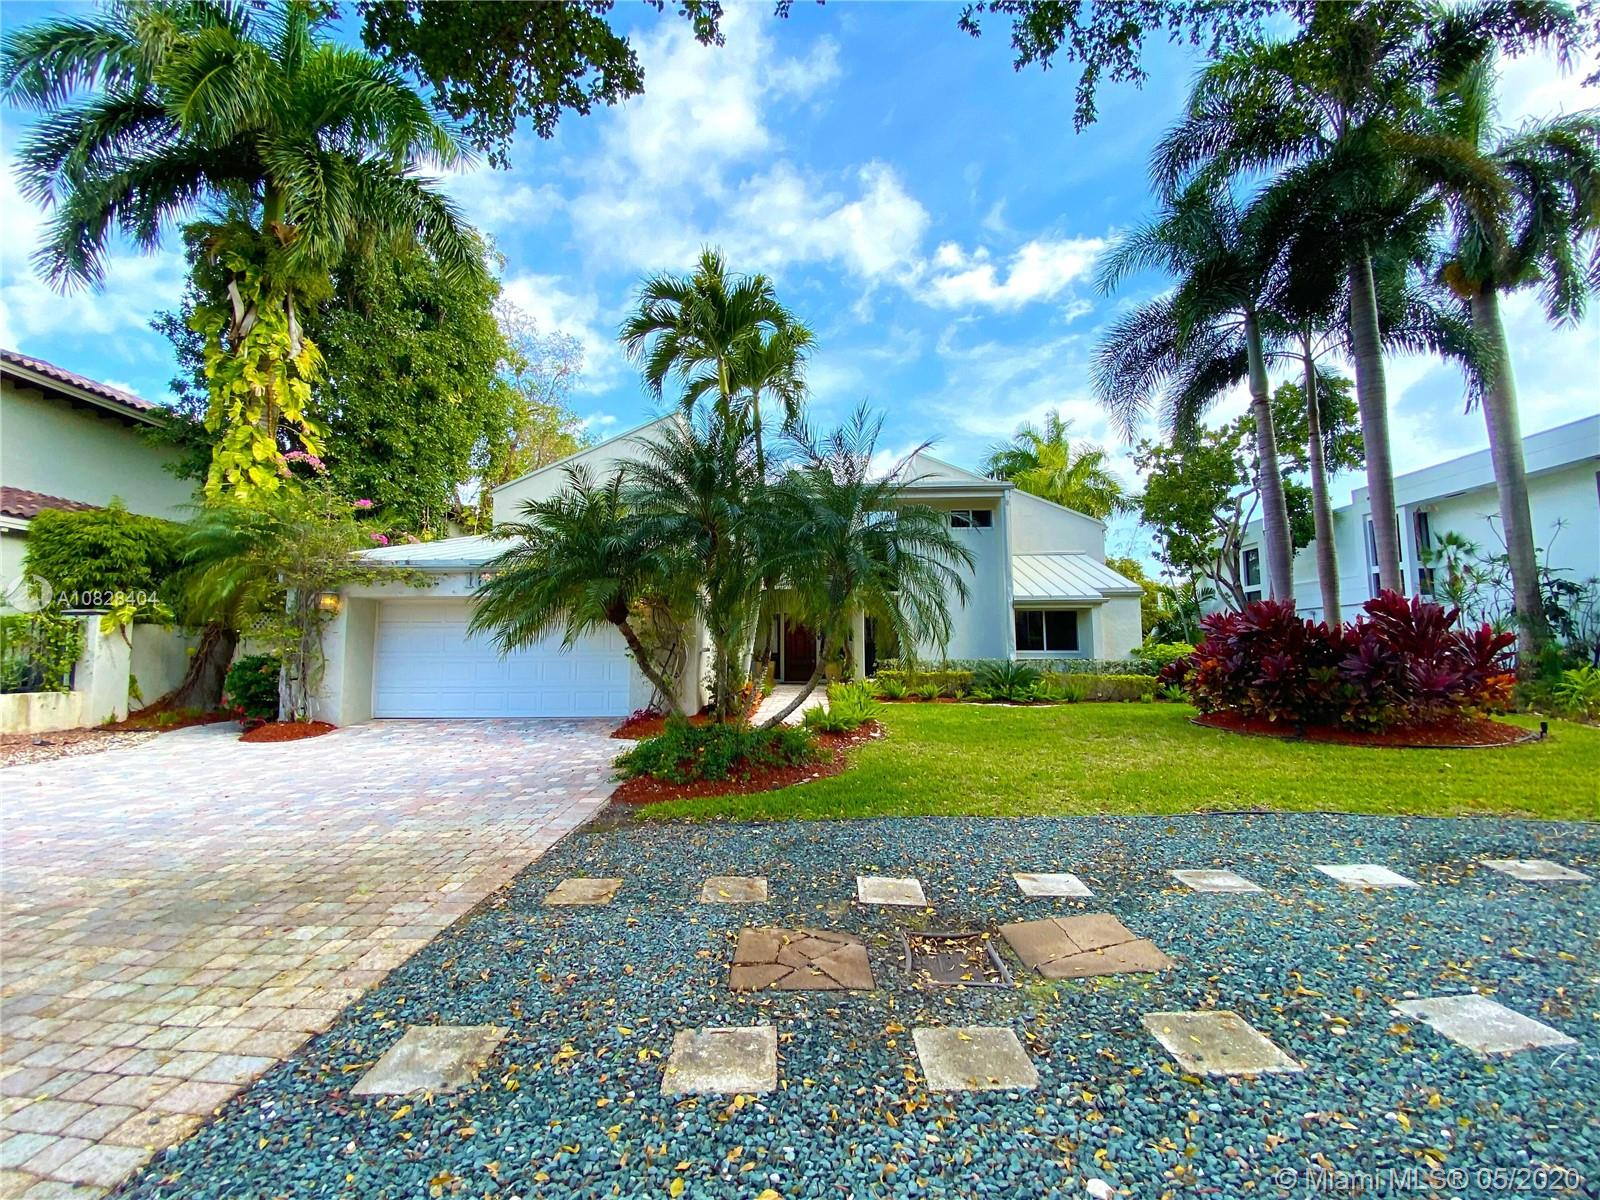 STUNNING WATERFRONT HOME ON ONE OF THE BEST STREETS IN RIO VISTA!! CIRCULAR DRIVEWAY AND DOUBLE CAR GARAGE FOR PLENTY OF ENTERTAINING, A SPACIOUS POOL & DECK WITH 85 FT OF DOCK FOR YOUR BAHAMIAN GETAWAYS. EXOTIC WOOD FLOORS THRU-OUT, UNIQUE STEP OUT BALCONY'S ON BOTH UPPER BEDROOMS AND A STONE FIREPLACE FOR COZY CUDDLING AFTER KAYAKING ALL DAY. THIS HOME COULD GENERATE 2-3 TIMES MARKET RENT  WITH SHORT TERM RENTAL PLATFORMS OR JUST ENJOY IT AND LIVE LIFE TO THE FULLEST. CALL LIST AGENT FOR EXCLUSIVE SHOWINGS NOW....